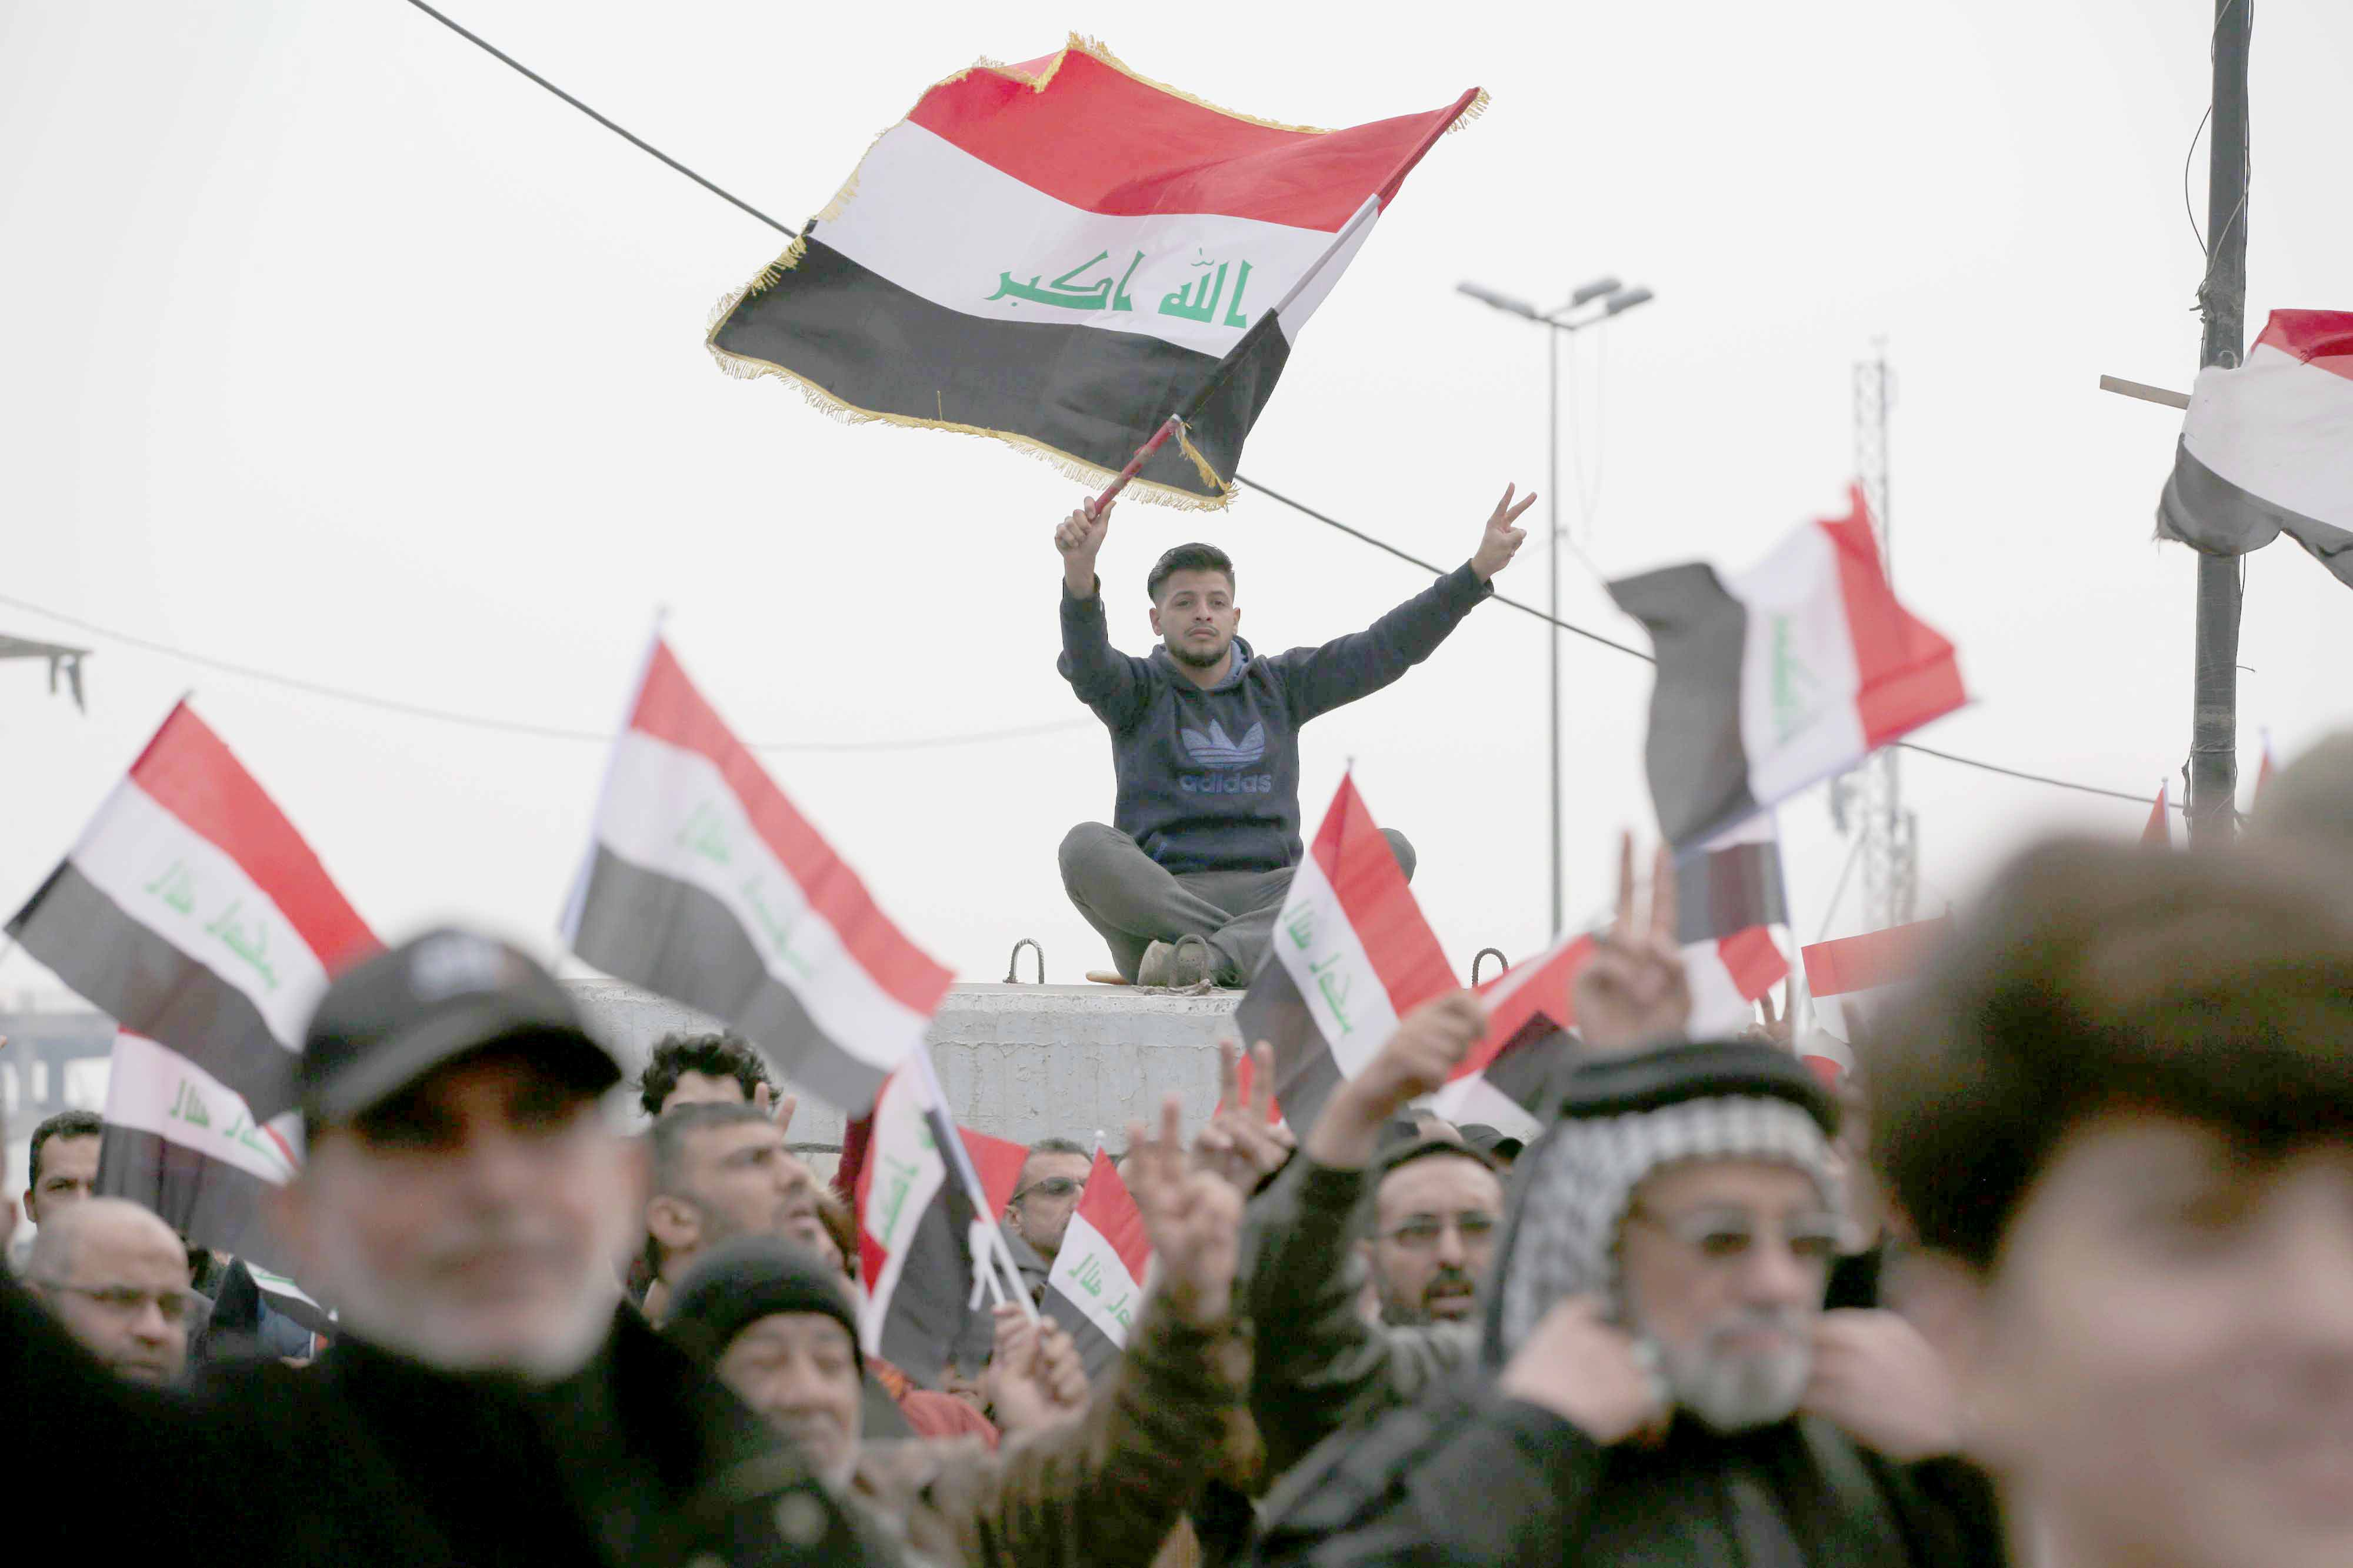 Stirring unrest. Iraqis hold flags during a protest against corruption at Tahrir Square, last February.(DPA)